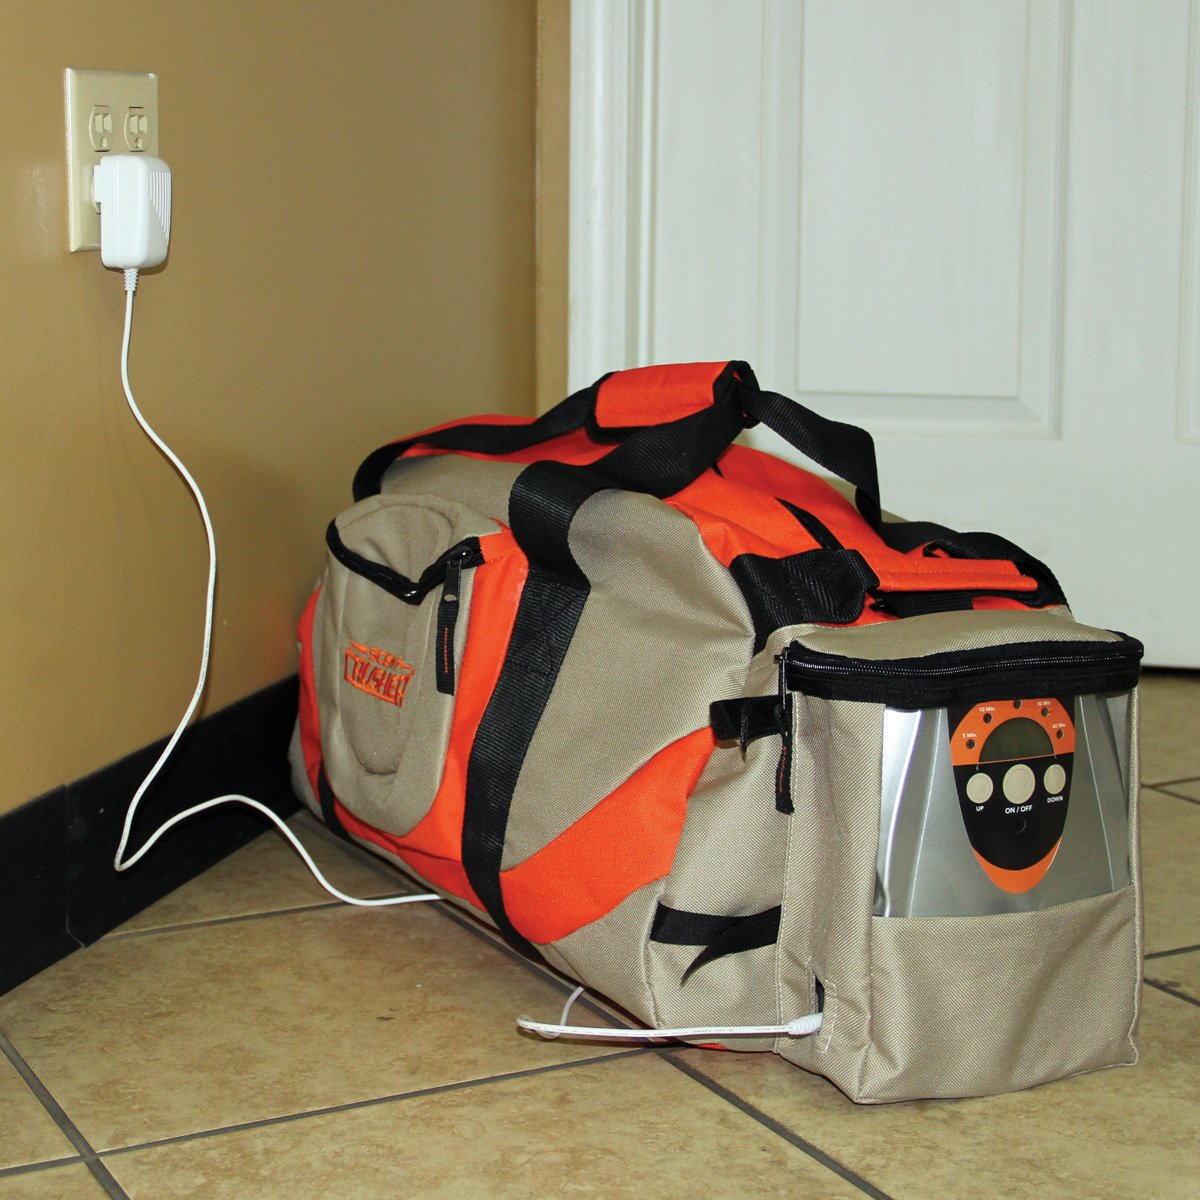 Scent Crusher Ozone Gear Bag by Scent Crusher (Image #4)